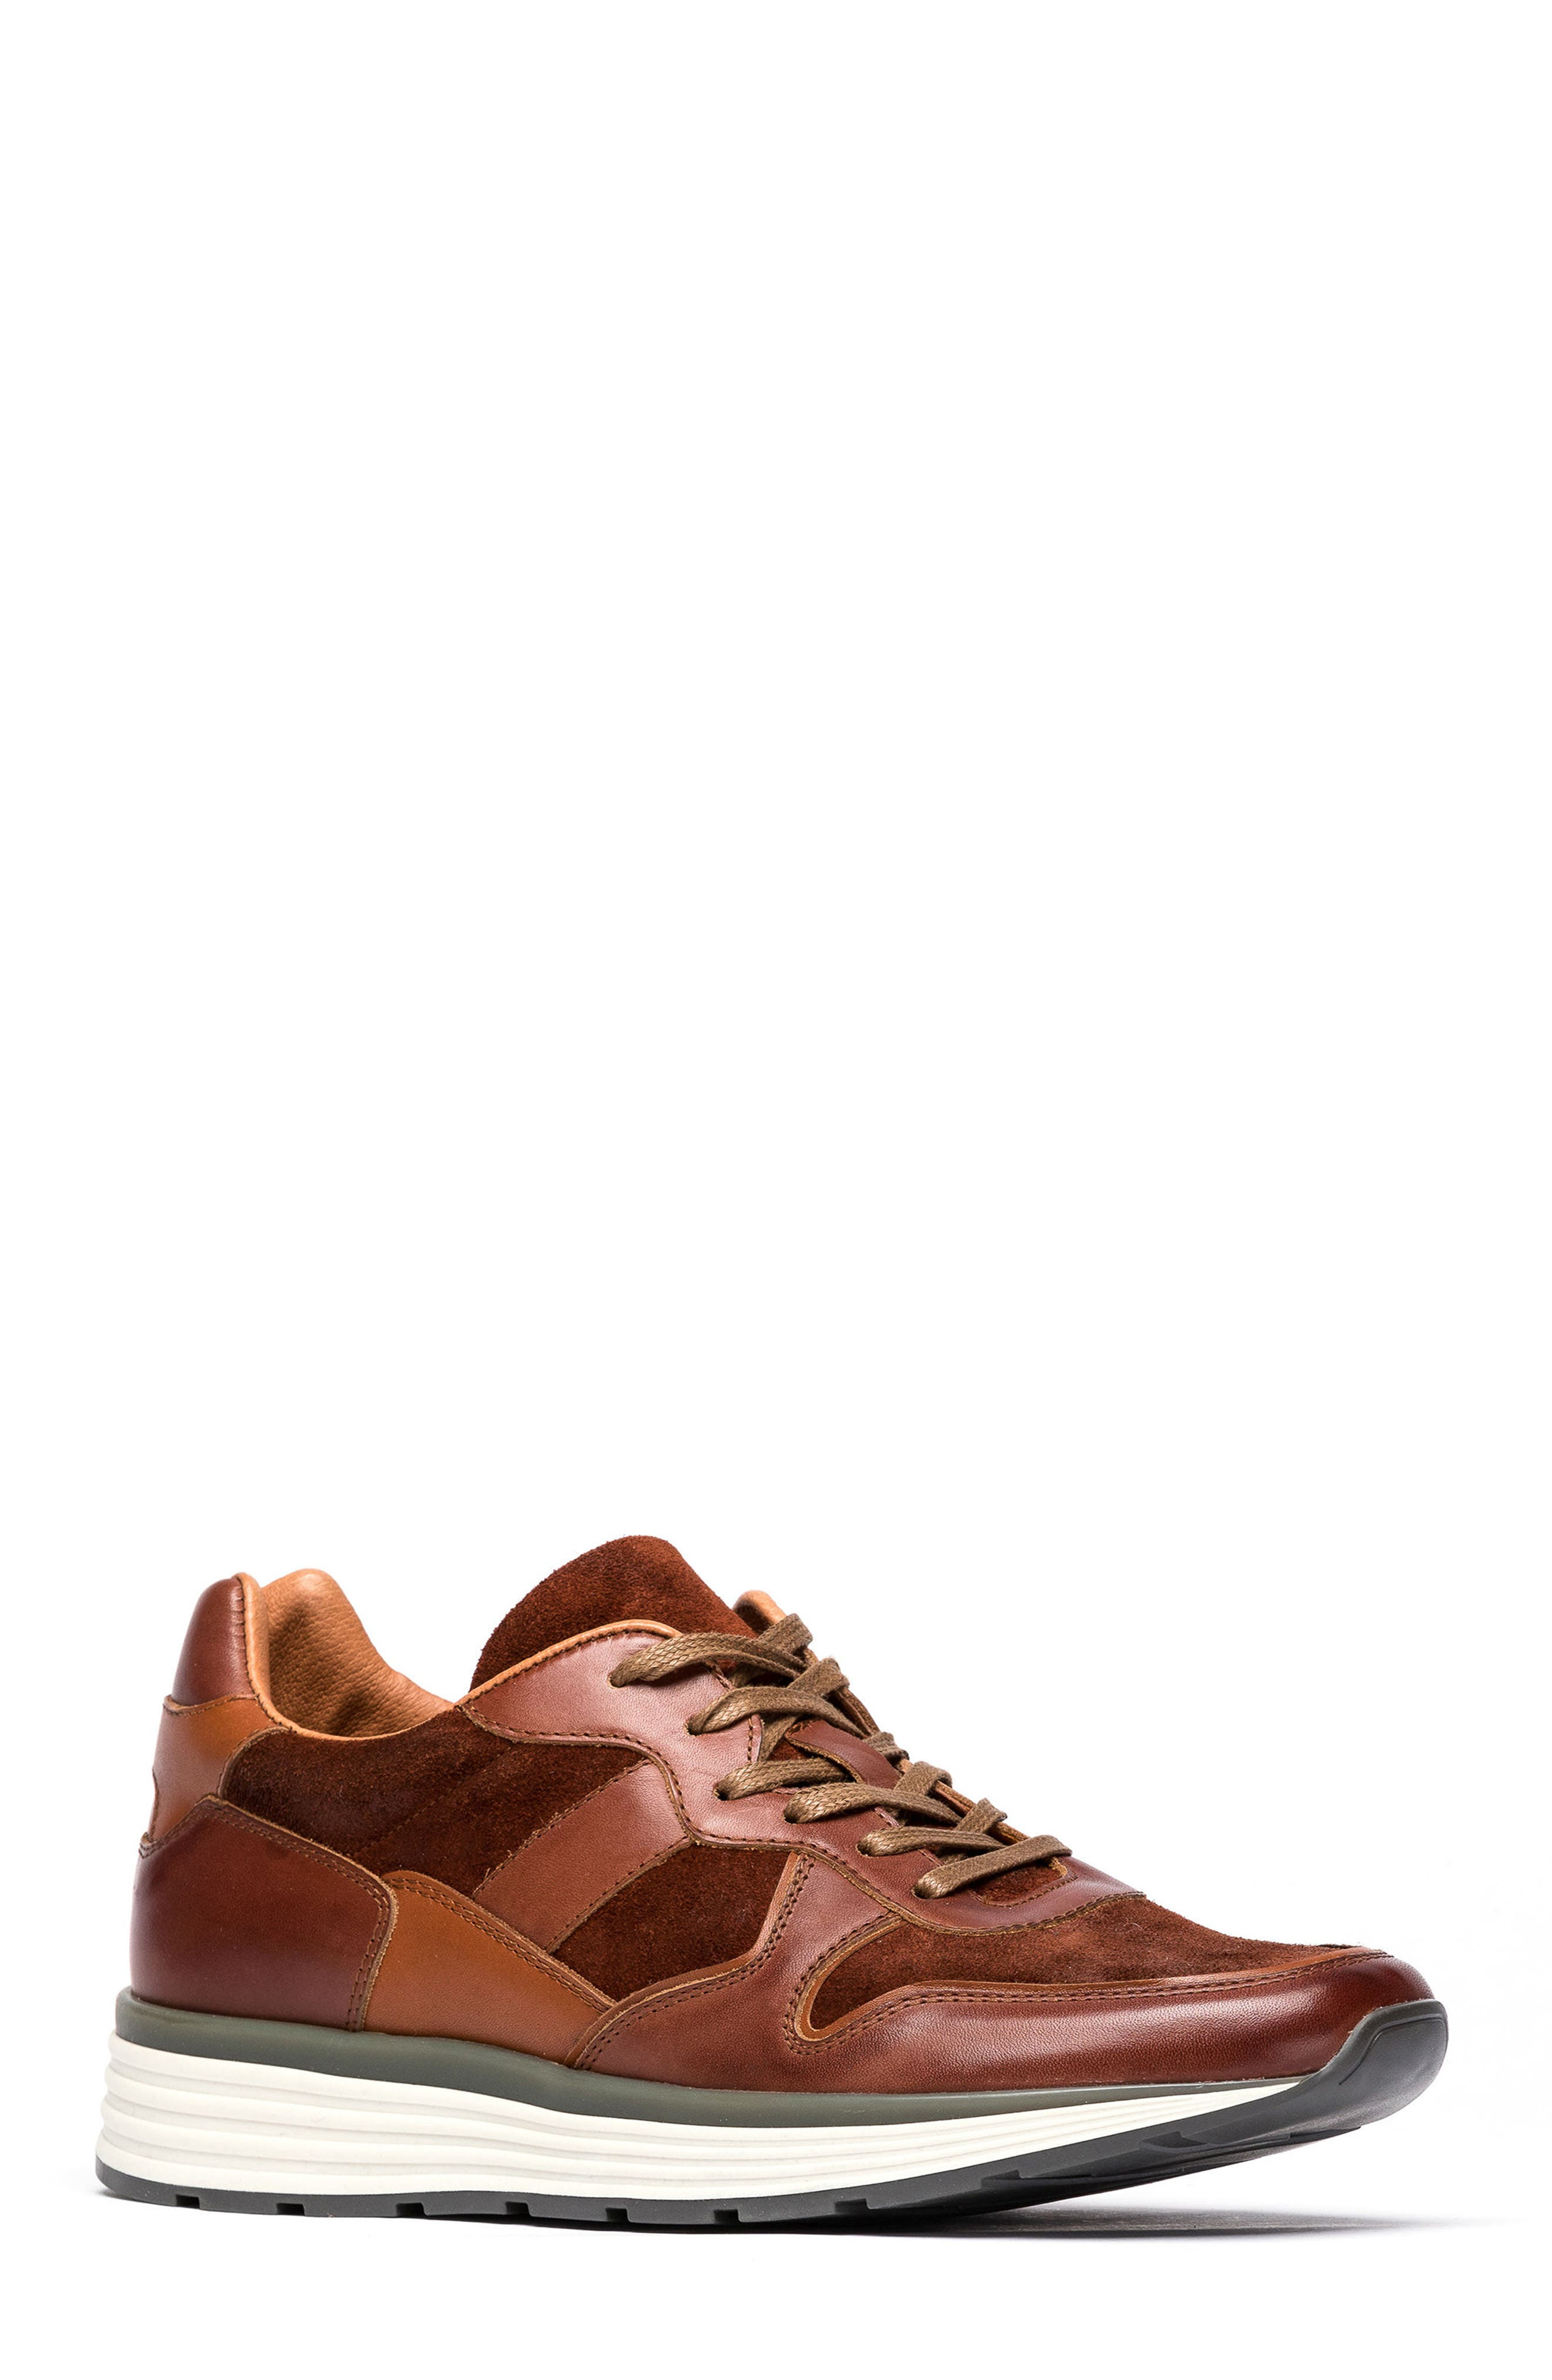 Hickory Sneaker,                         Main,                         color, 208